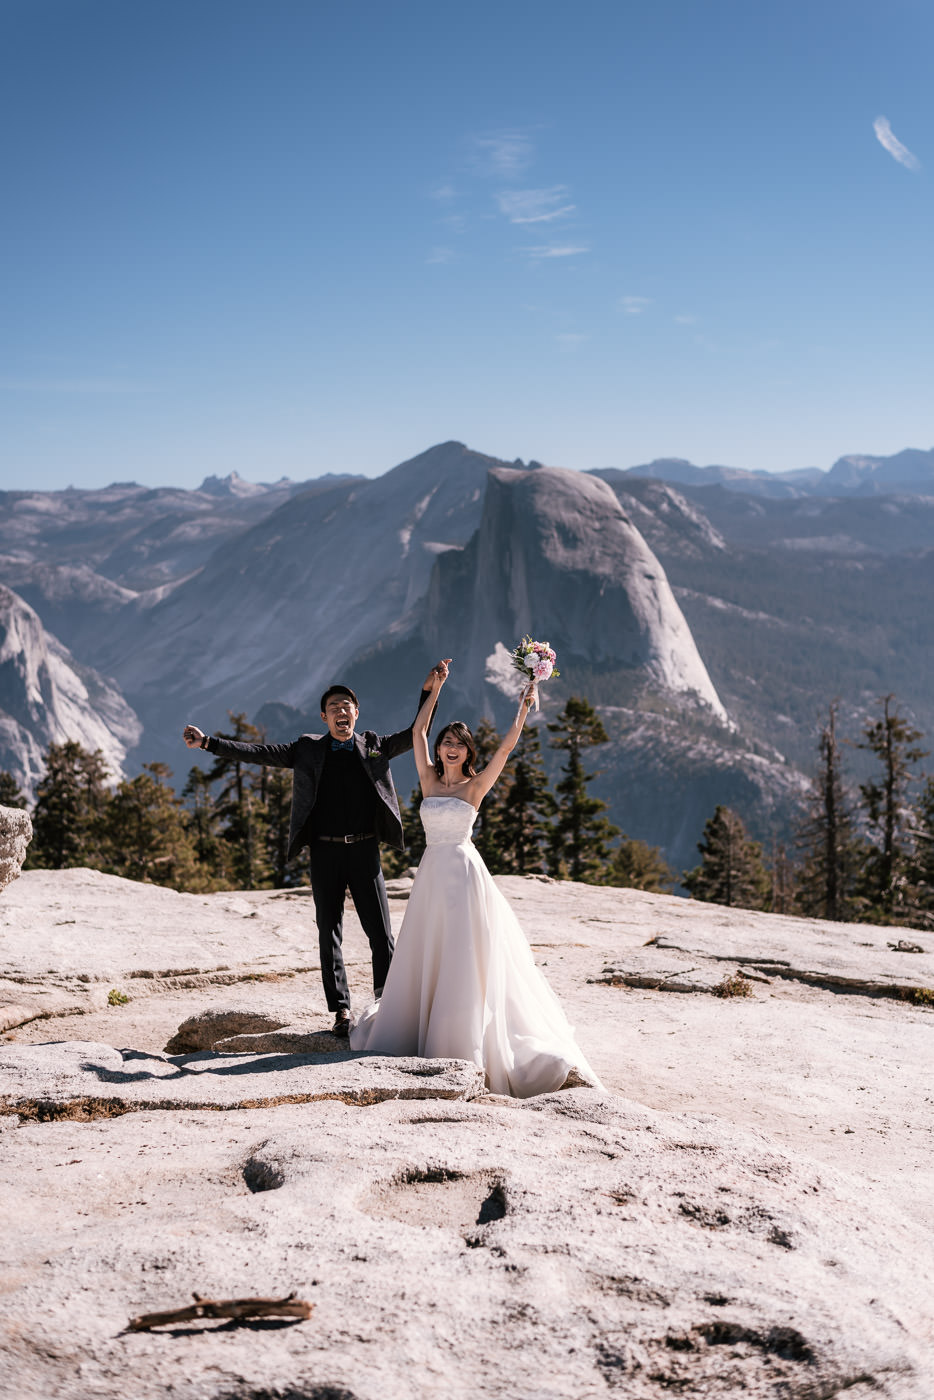 Newly married couple celebrates their marriage a top Sentinel Dome.